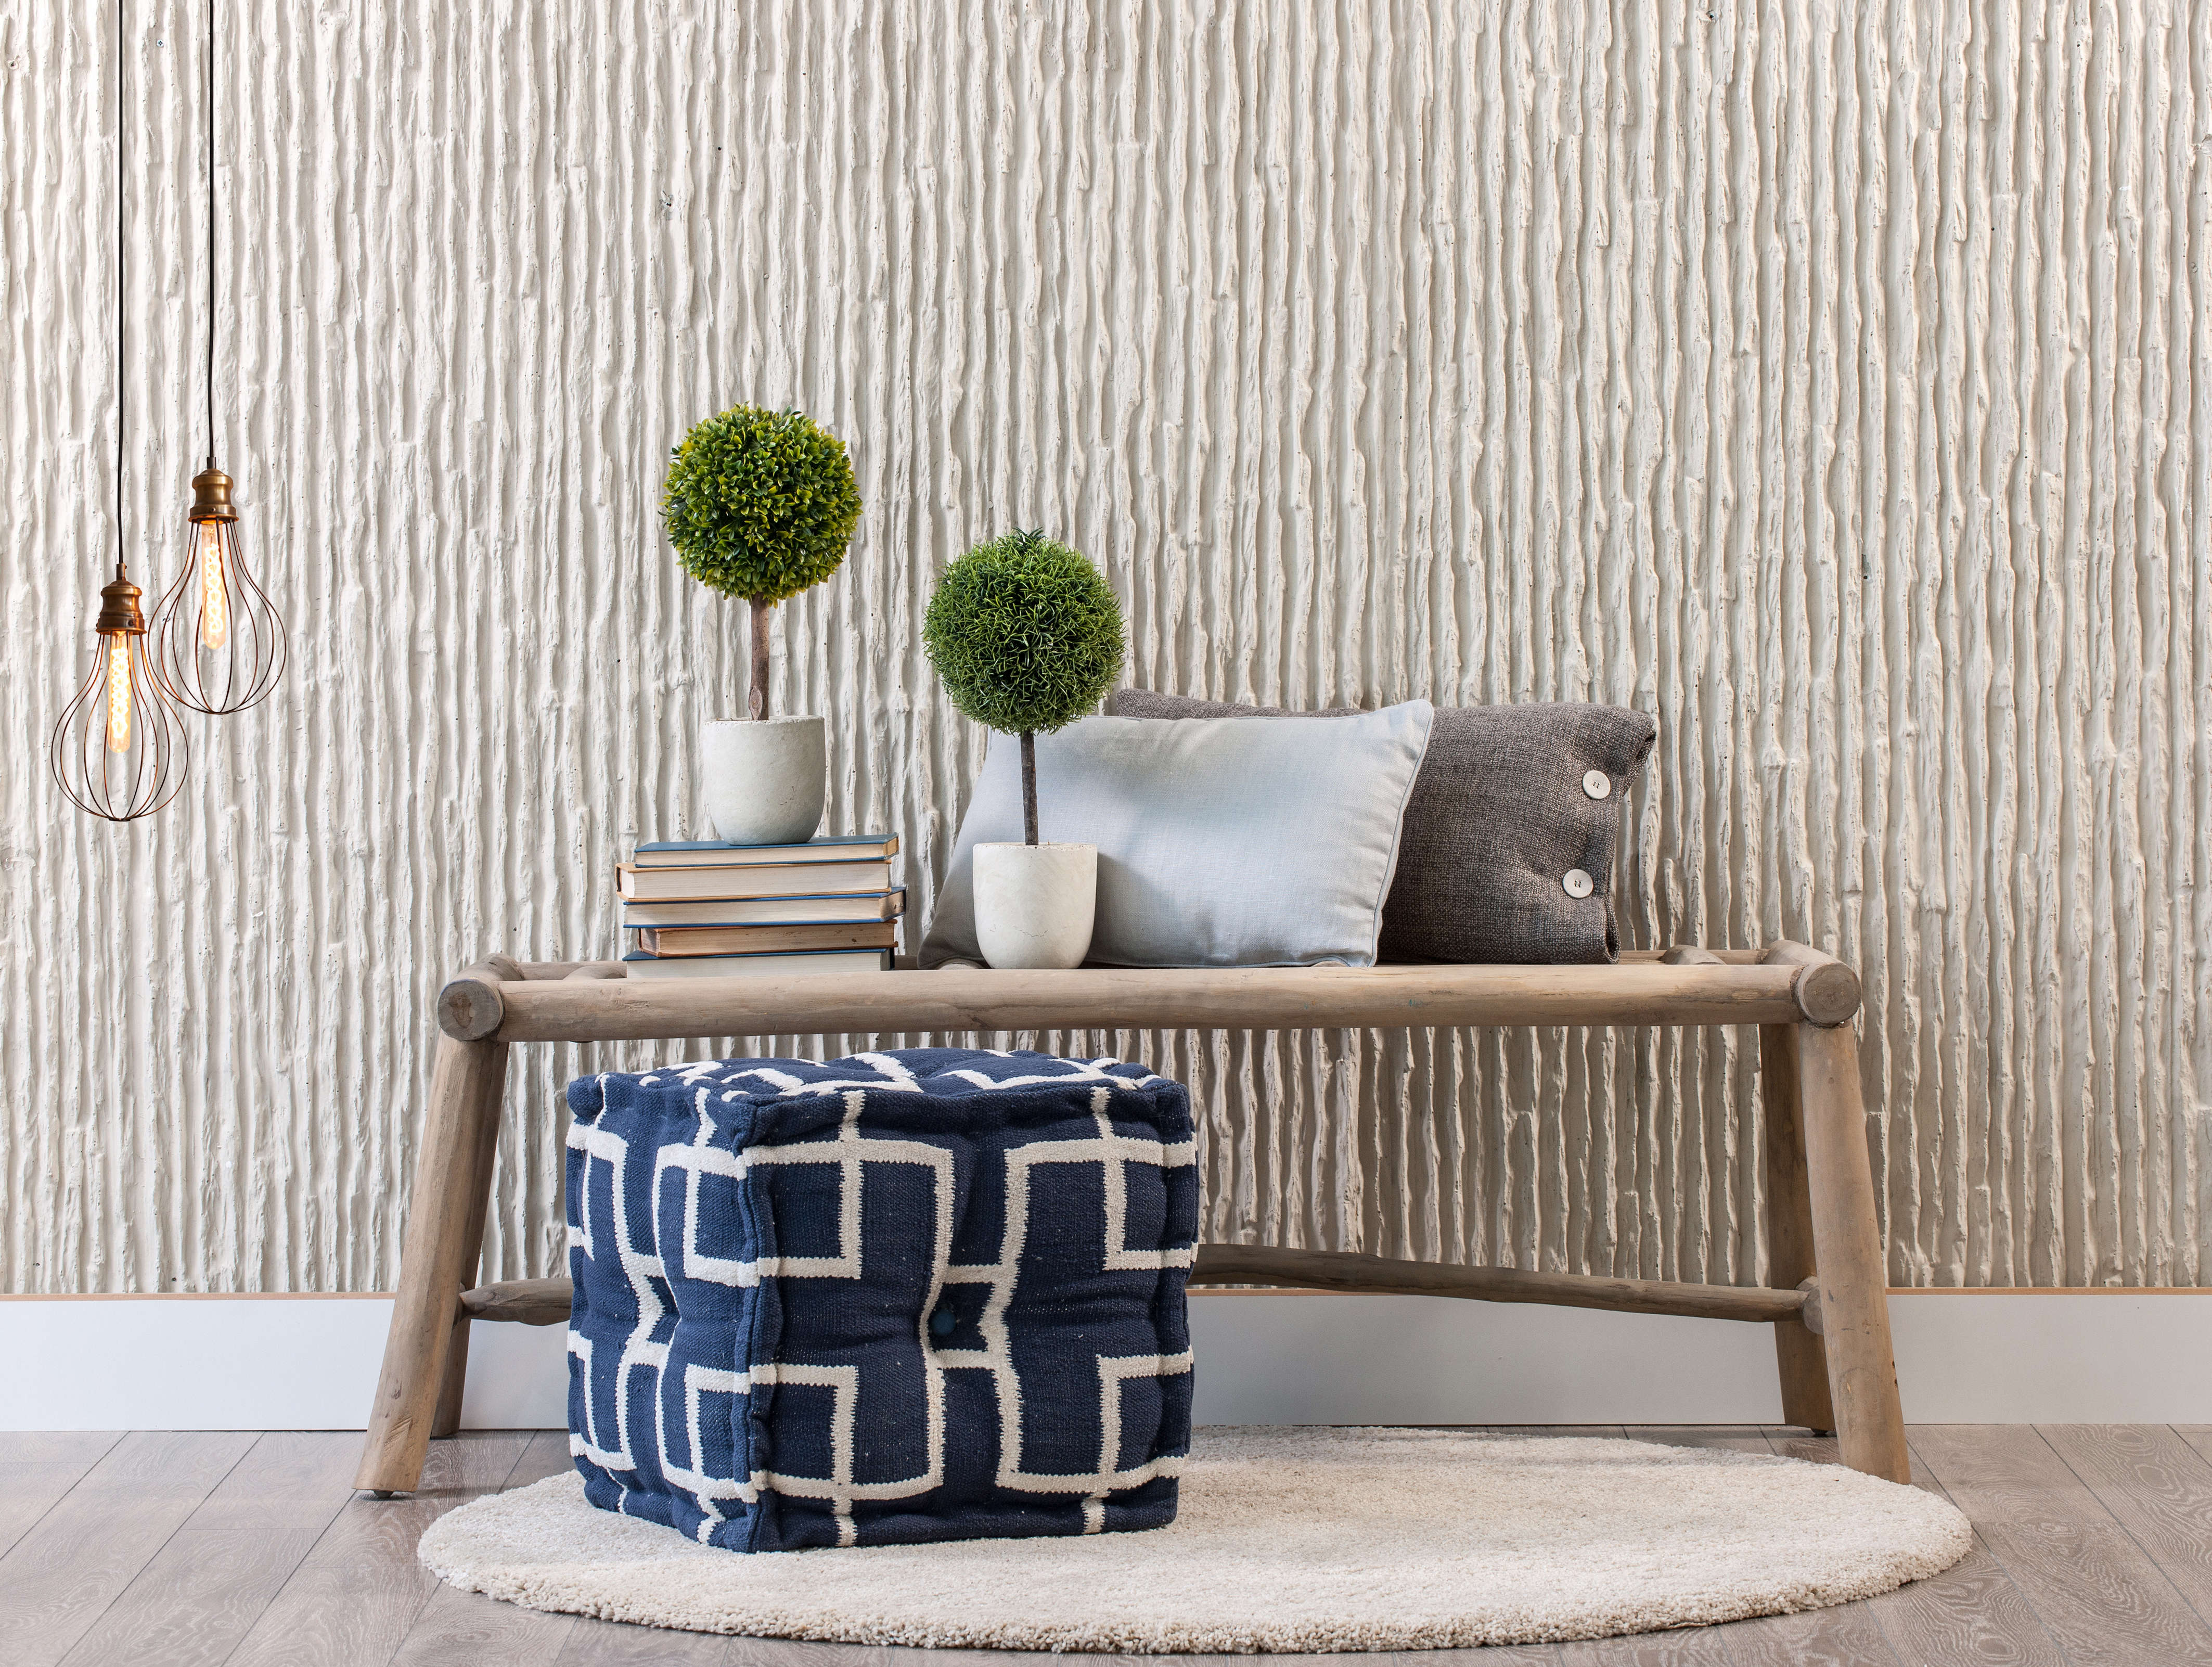 2017 home decorating trends lakes at creekside